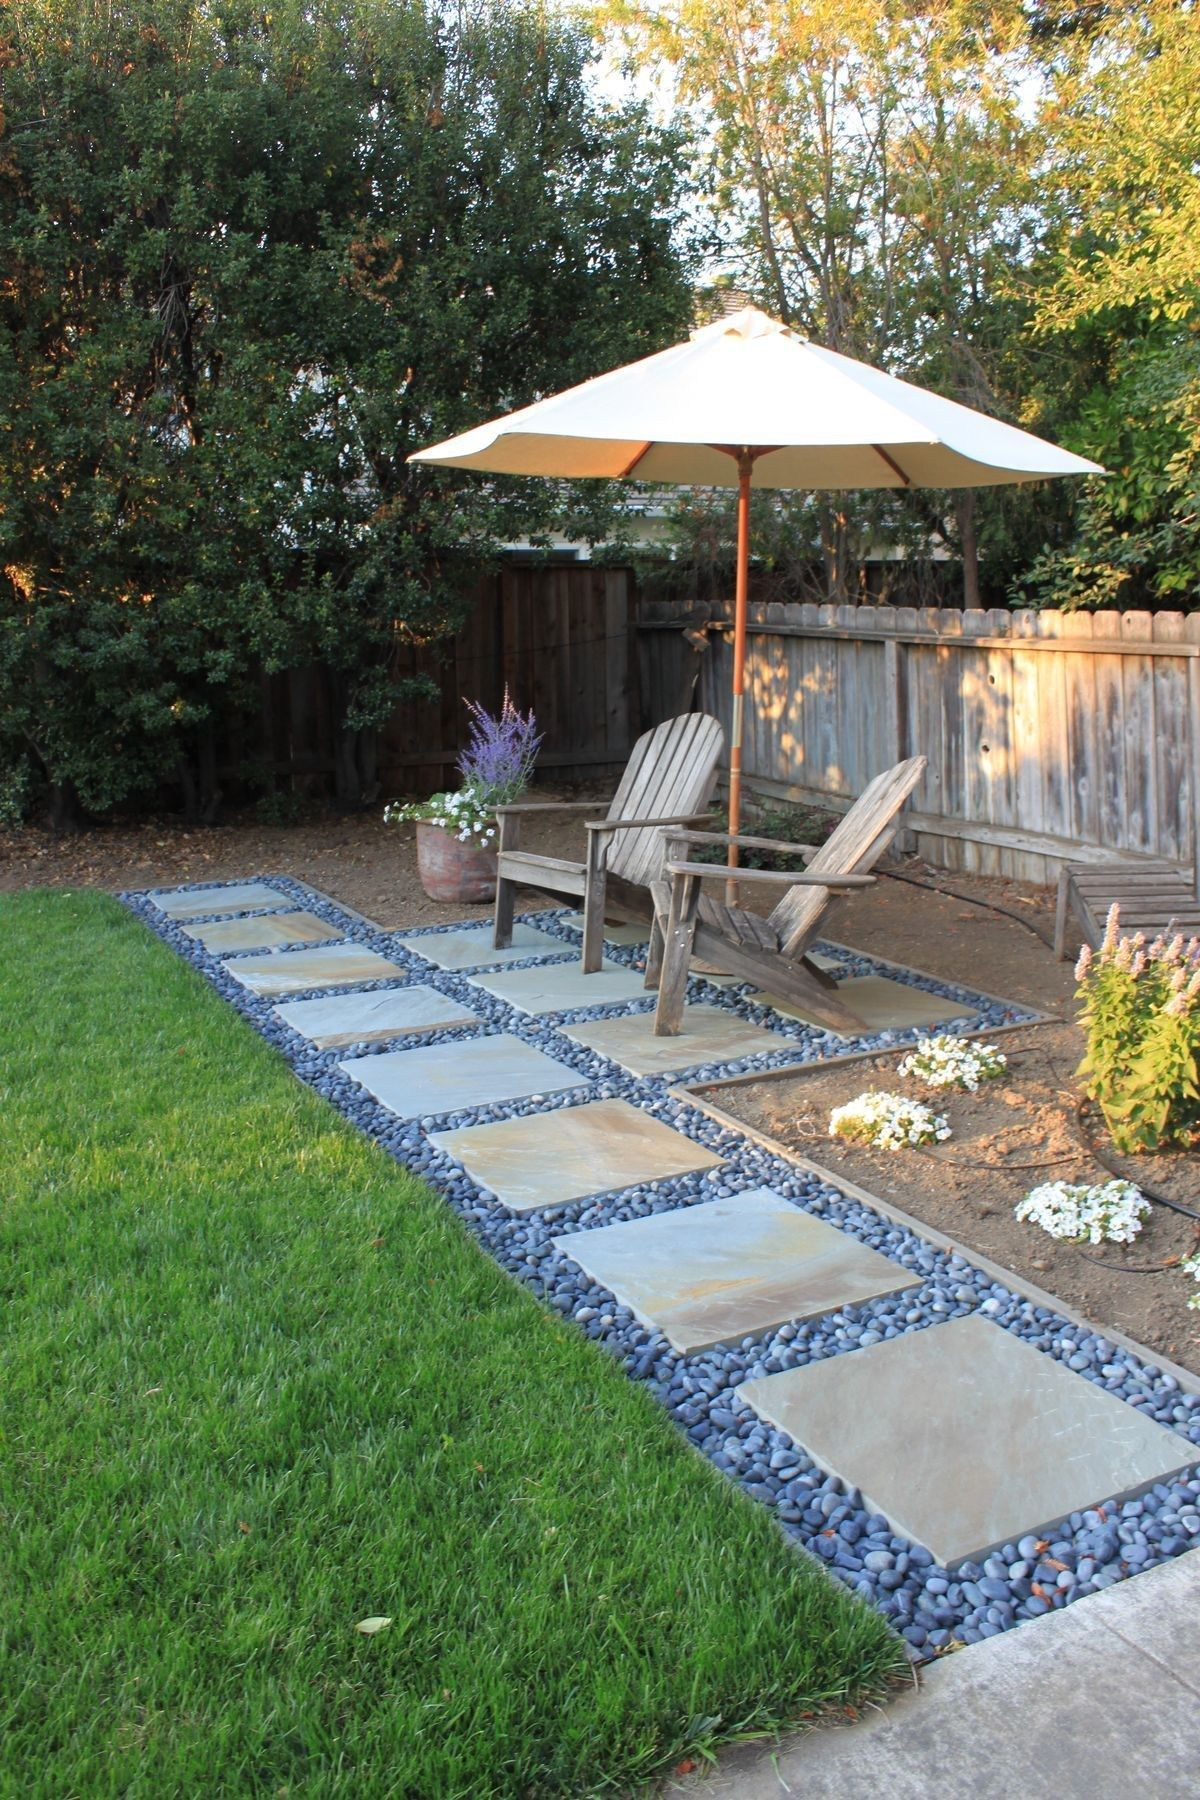 11 Awesome Ideas How to Make Backyard Paver Patio Ideas is part of Patio pavers design, Backyard patio designs, Small backyard landscaping, Pavers backyard, Backyard patio, Backyard - When we Are speaking about the house decor, we cannot overlook speaking about the Backyard Paver Patio Ideas  Backyard  the outdoor side of the house decor,